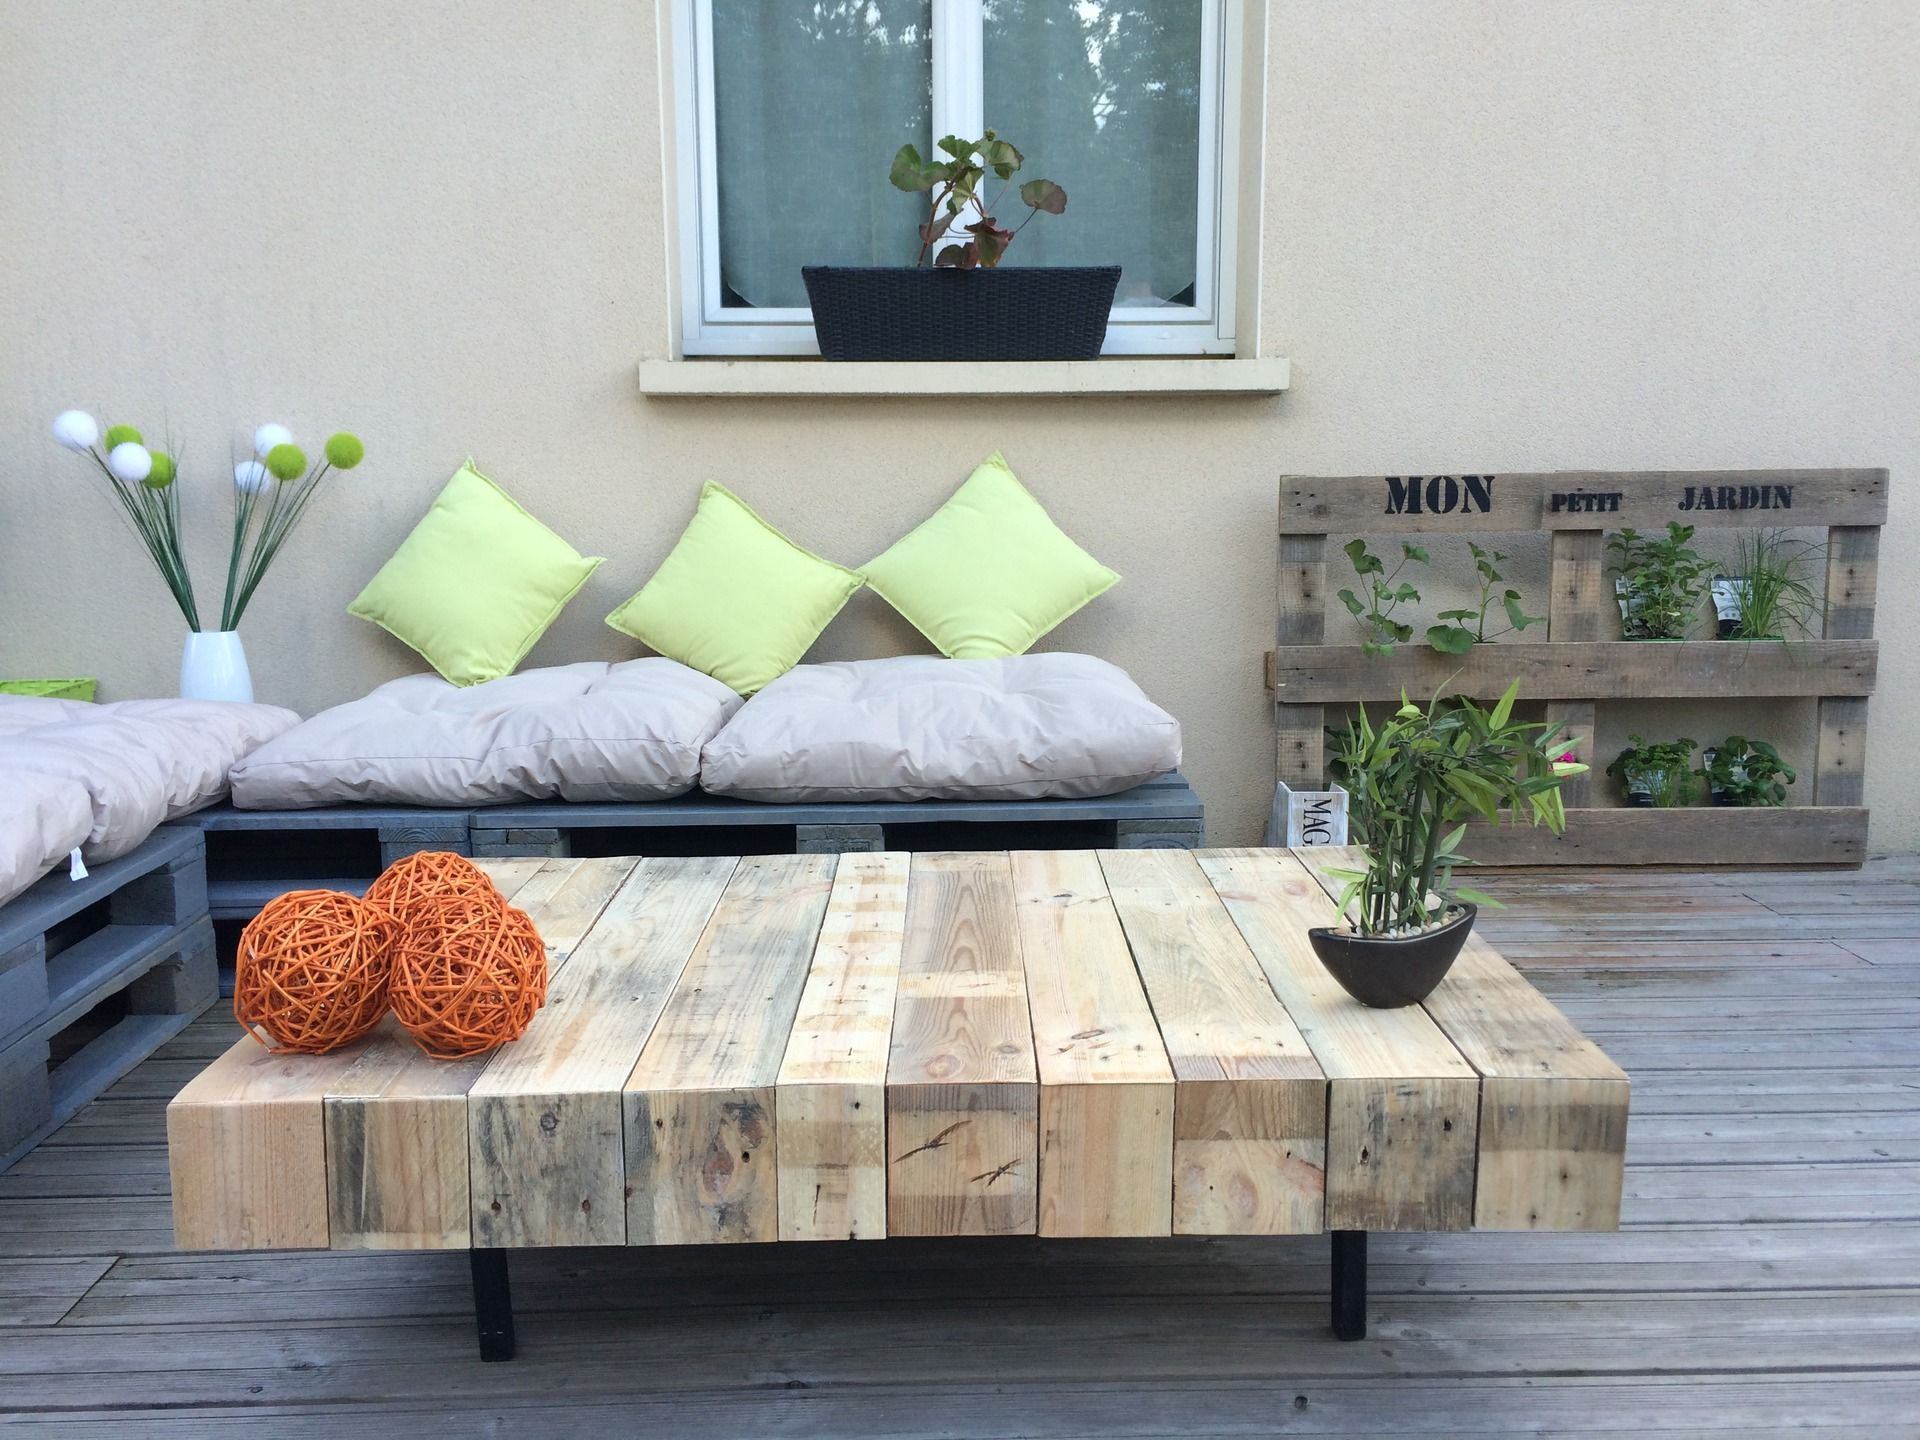 Awesome table de jardin fabrication maison contemporary - Table basse fabrication maison ...